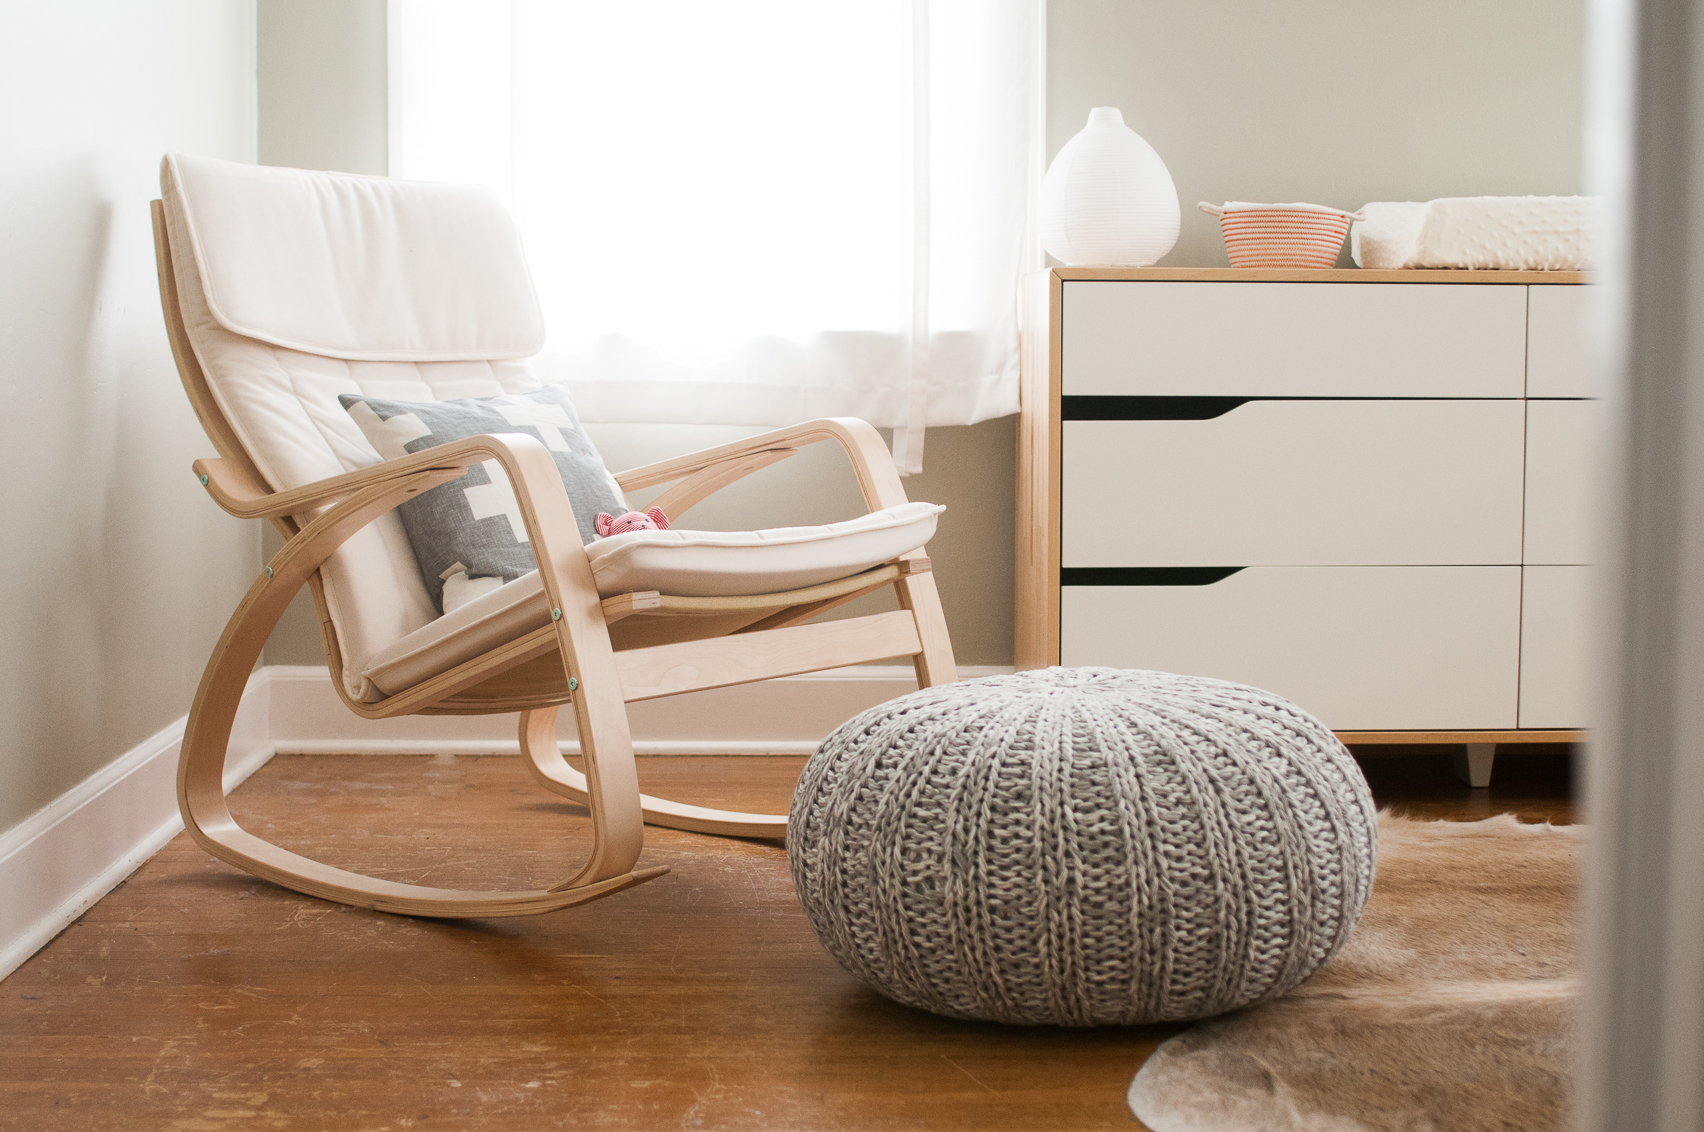 nursery rocking chair ikea poang rocking chair for gray and white nursery NSCGBLR